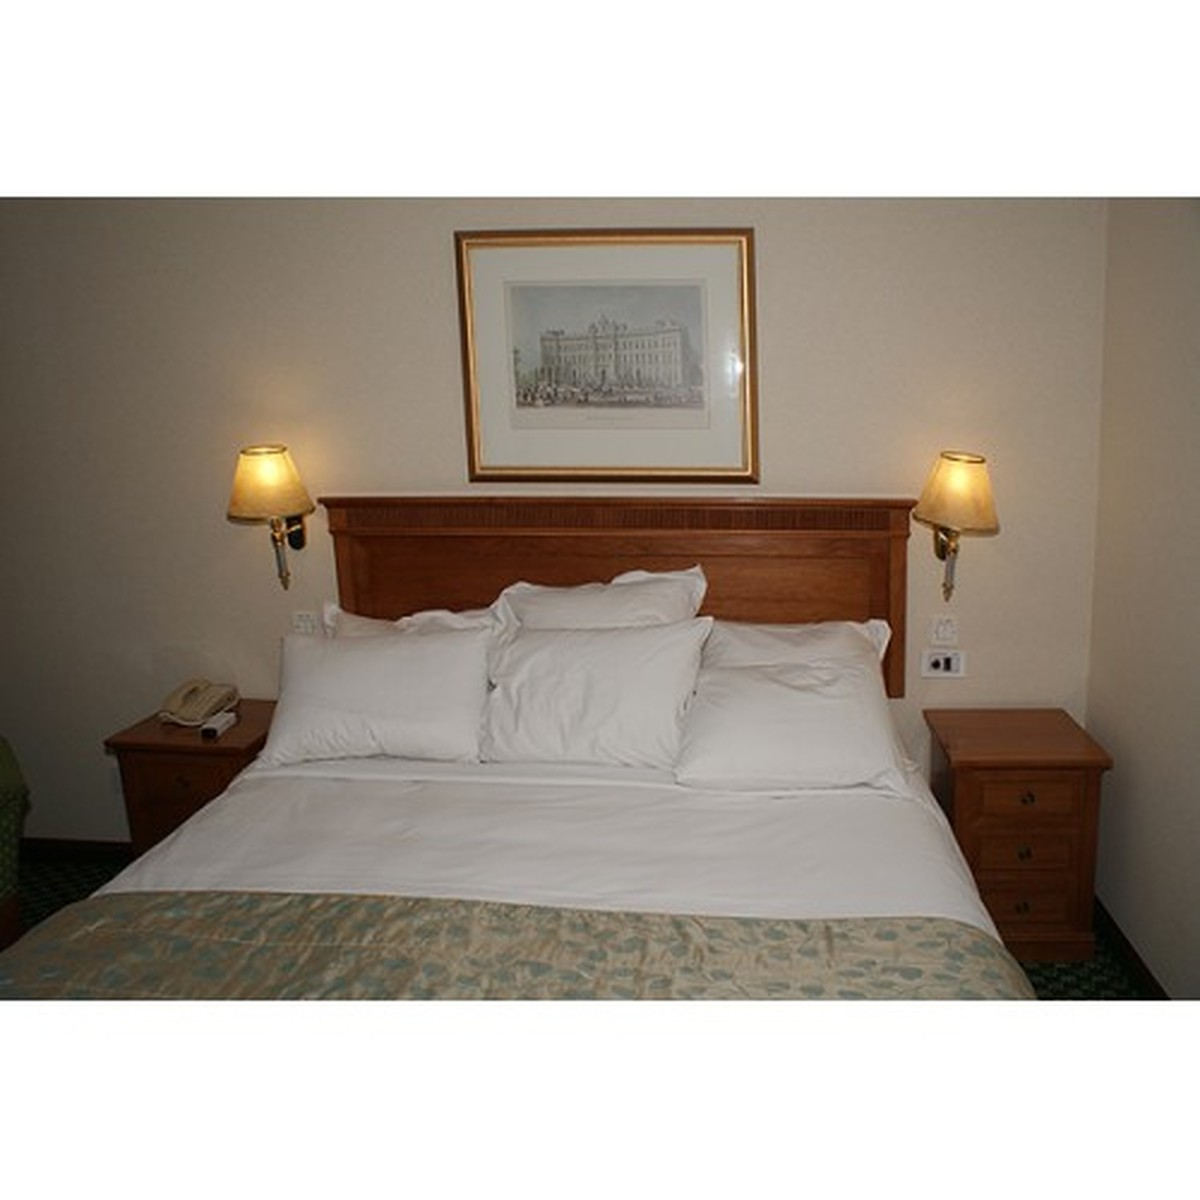 Secondhand Hotel Furniture Mayfair Furniture Caterfair Cambridgeshire Ascot Bedroom Sets